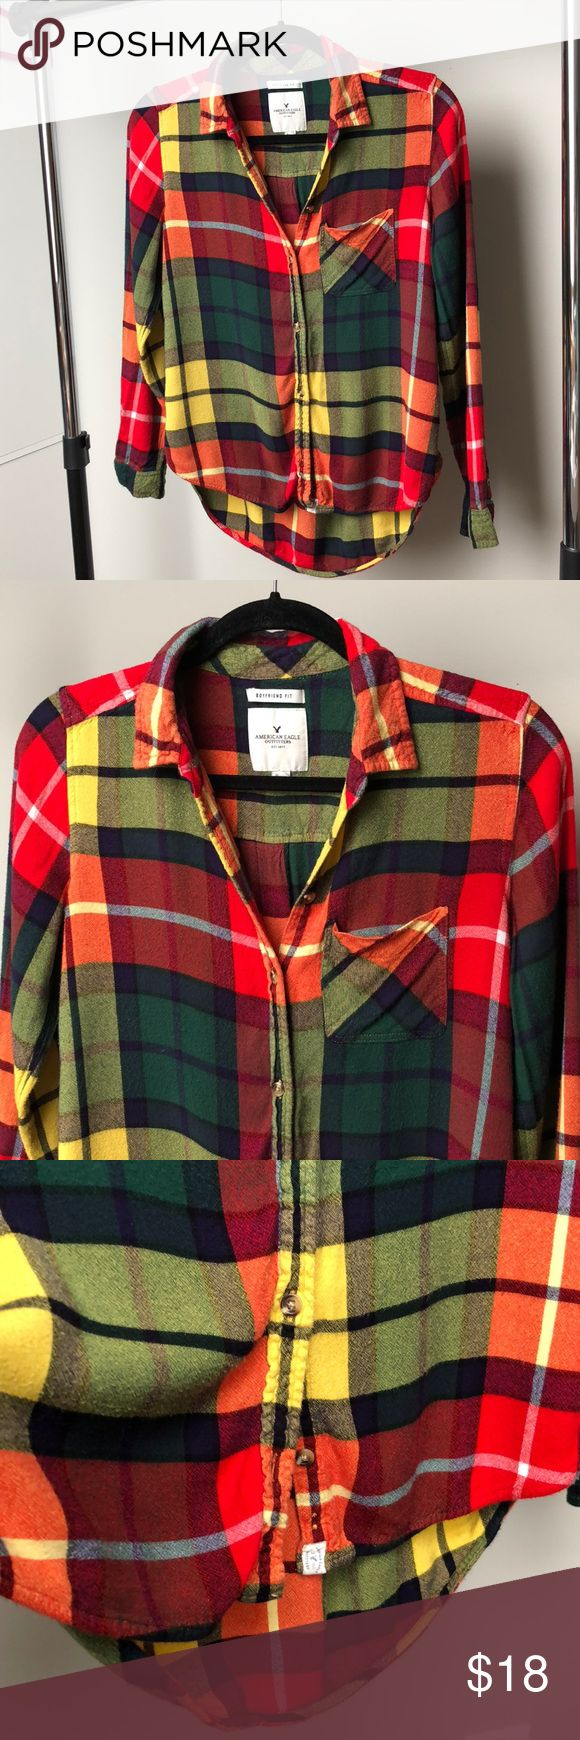 AE Boyfriend Flannel In great condition AEO Boyfriend Flannel from their Holiday Collection purchased at an American Eagle store. Super soft and comfy. Colors are vibrant, all buttons are intact. American Eagle Outfitters Tops Button Down Shirts